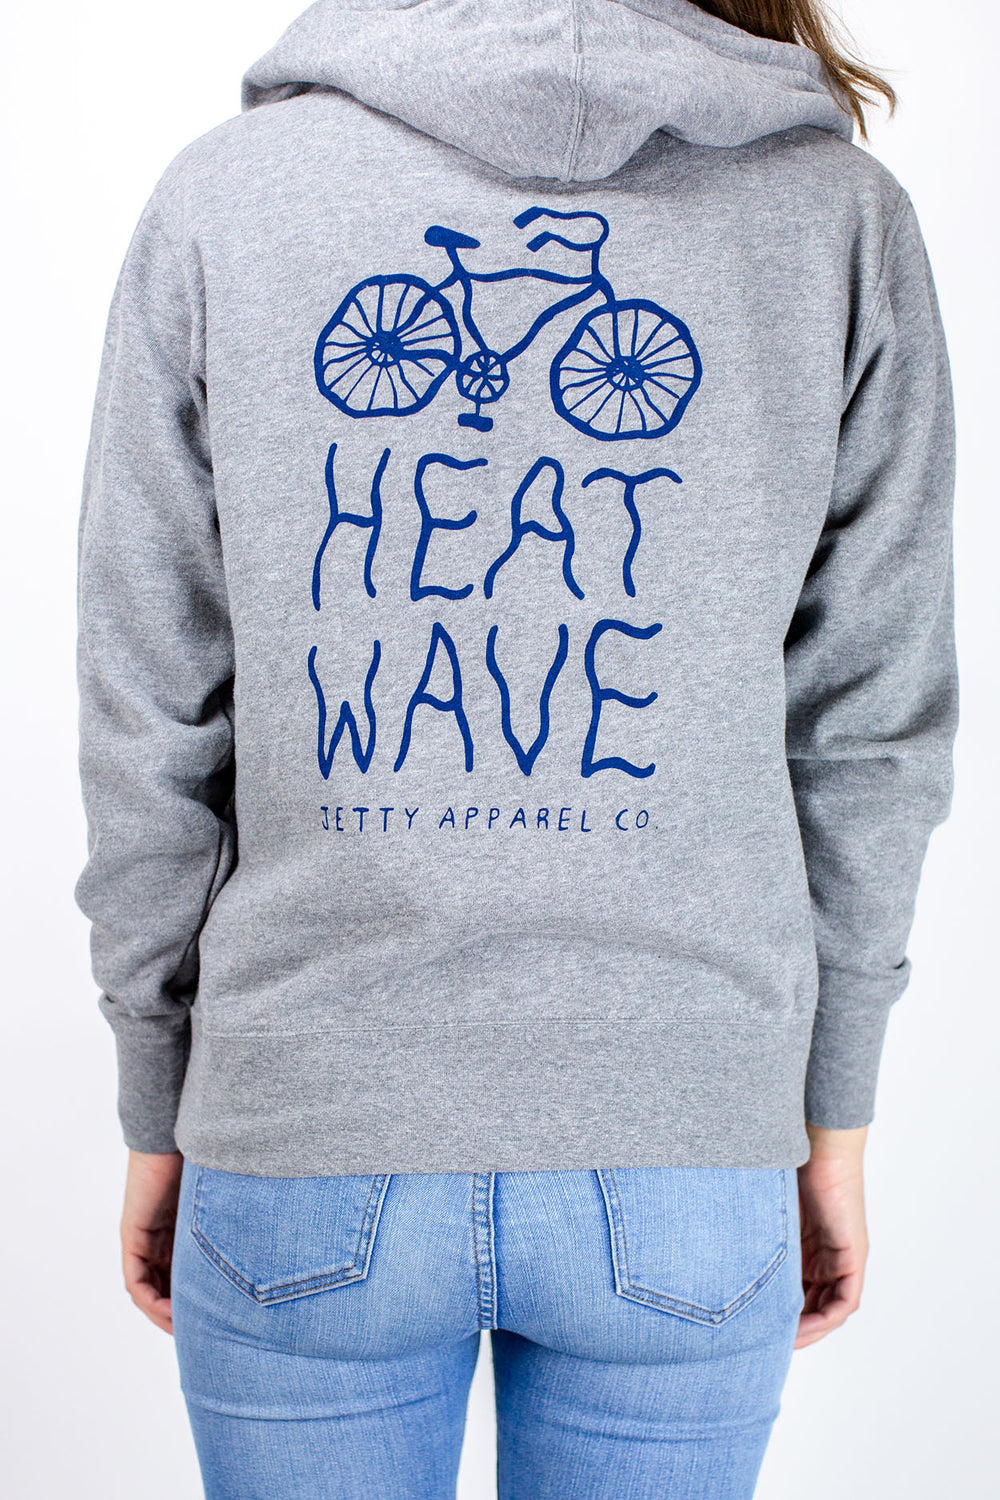 Heat Wave Zippy - Heather Grey